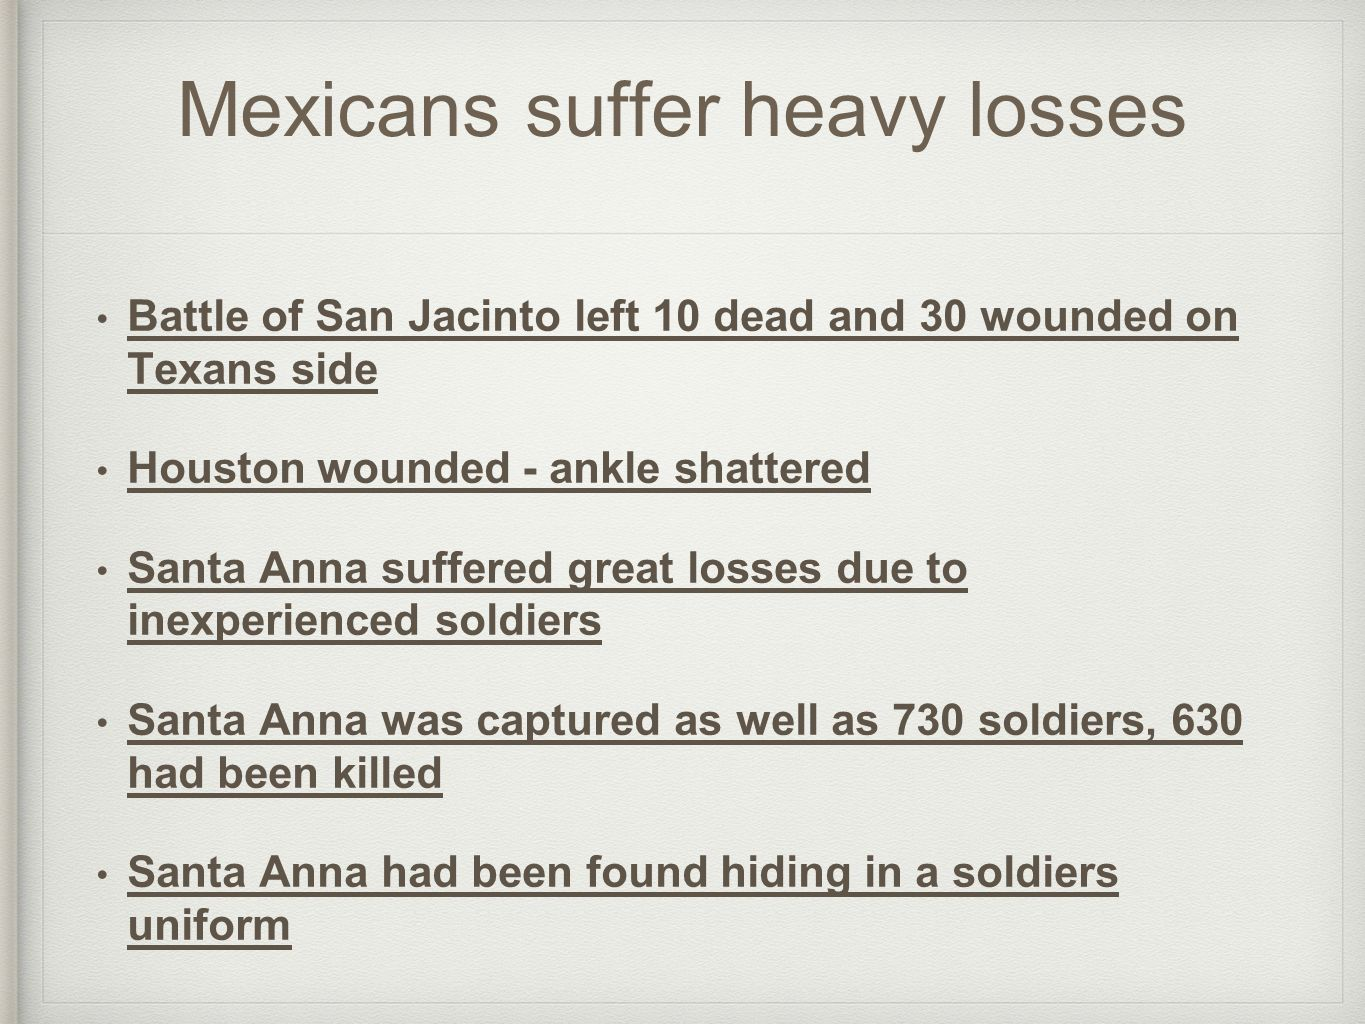 Mexicans suffer heavy losses Battle of San Jacinto left 10 dead and 30 wounded on Texans side Houston wounded - ankle shattered Santa Anna suffered great losses due to inexperienced soldiers Santa Anna was captured as well as 730 soldiers, 630 had been killed Santa Anna had been found hiding in a soldiers uniform